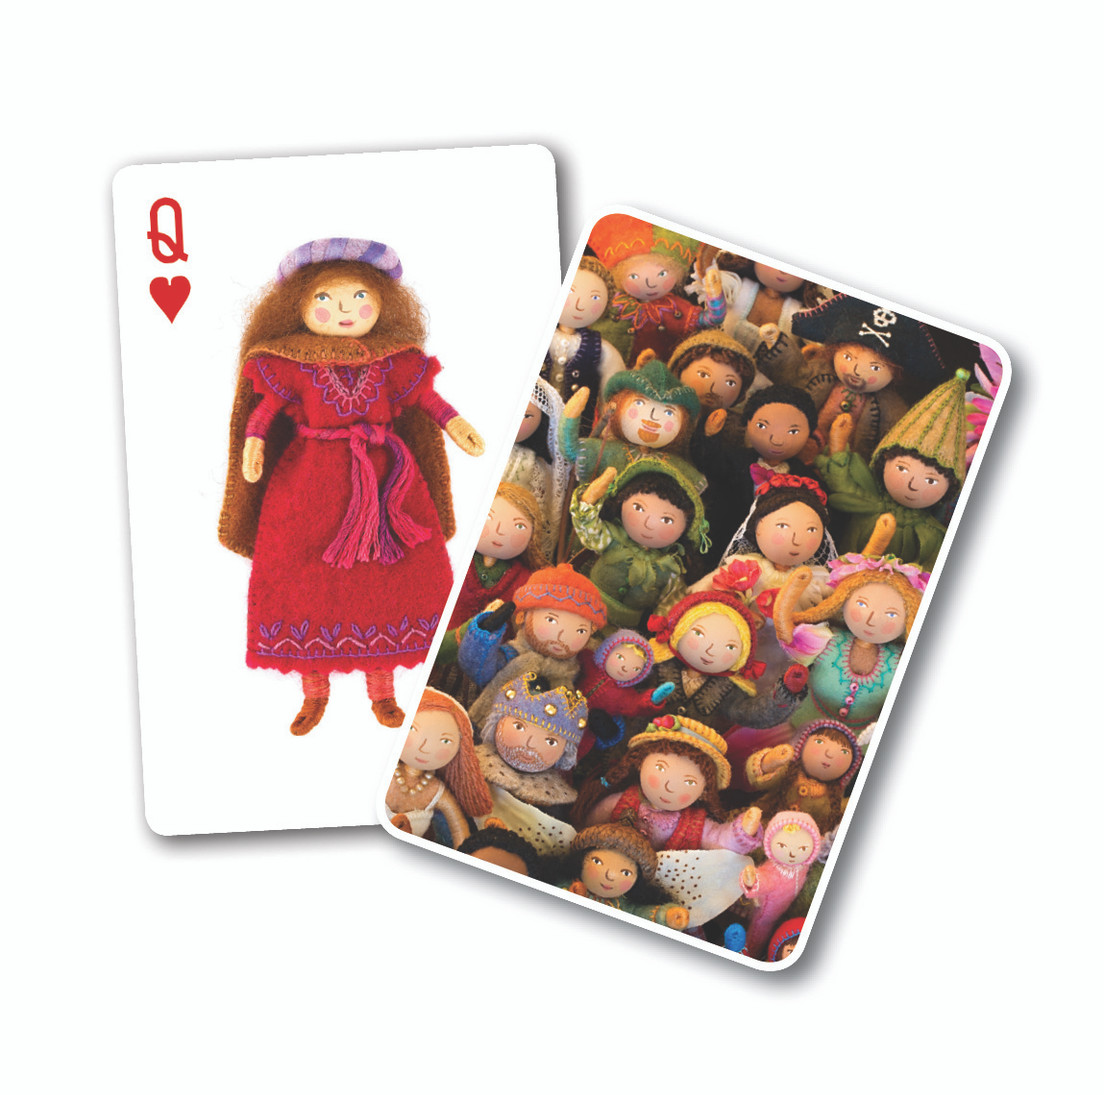 The popular Felt Wee Folk, created by best-selling author Salley Mavor, spring to life in an imaginative deck of playing cards. Each felt doll is shown in exquisite detail, so their outsize personalities shine through. So cute you will want to play with them all, these popular playing cards make a great gift for crafters and children, but will be loved by all!